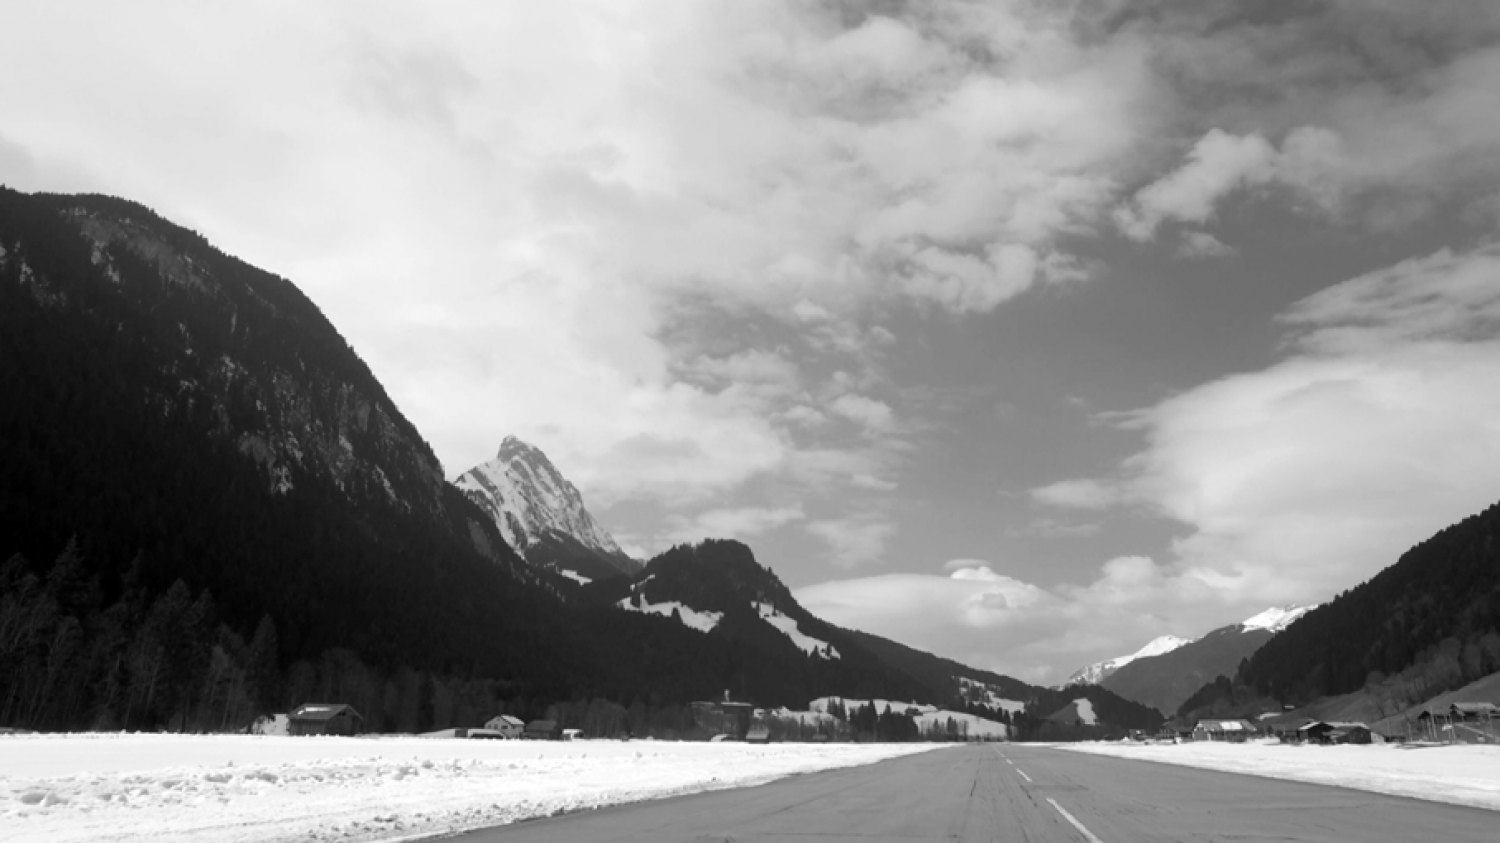 Sean Snyder Cloud Sediment (Gstaad), 2016  Video still, 16:9 format HD video, 7 minutes 47 seconds, b/w and color, audio